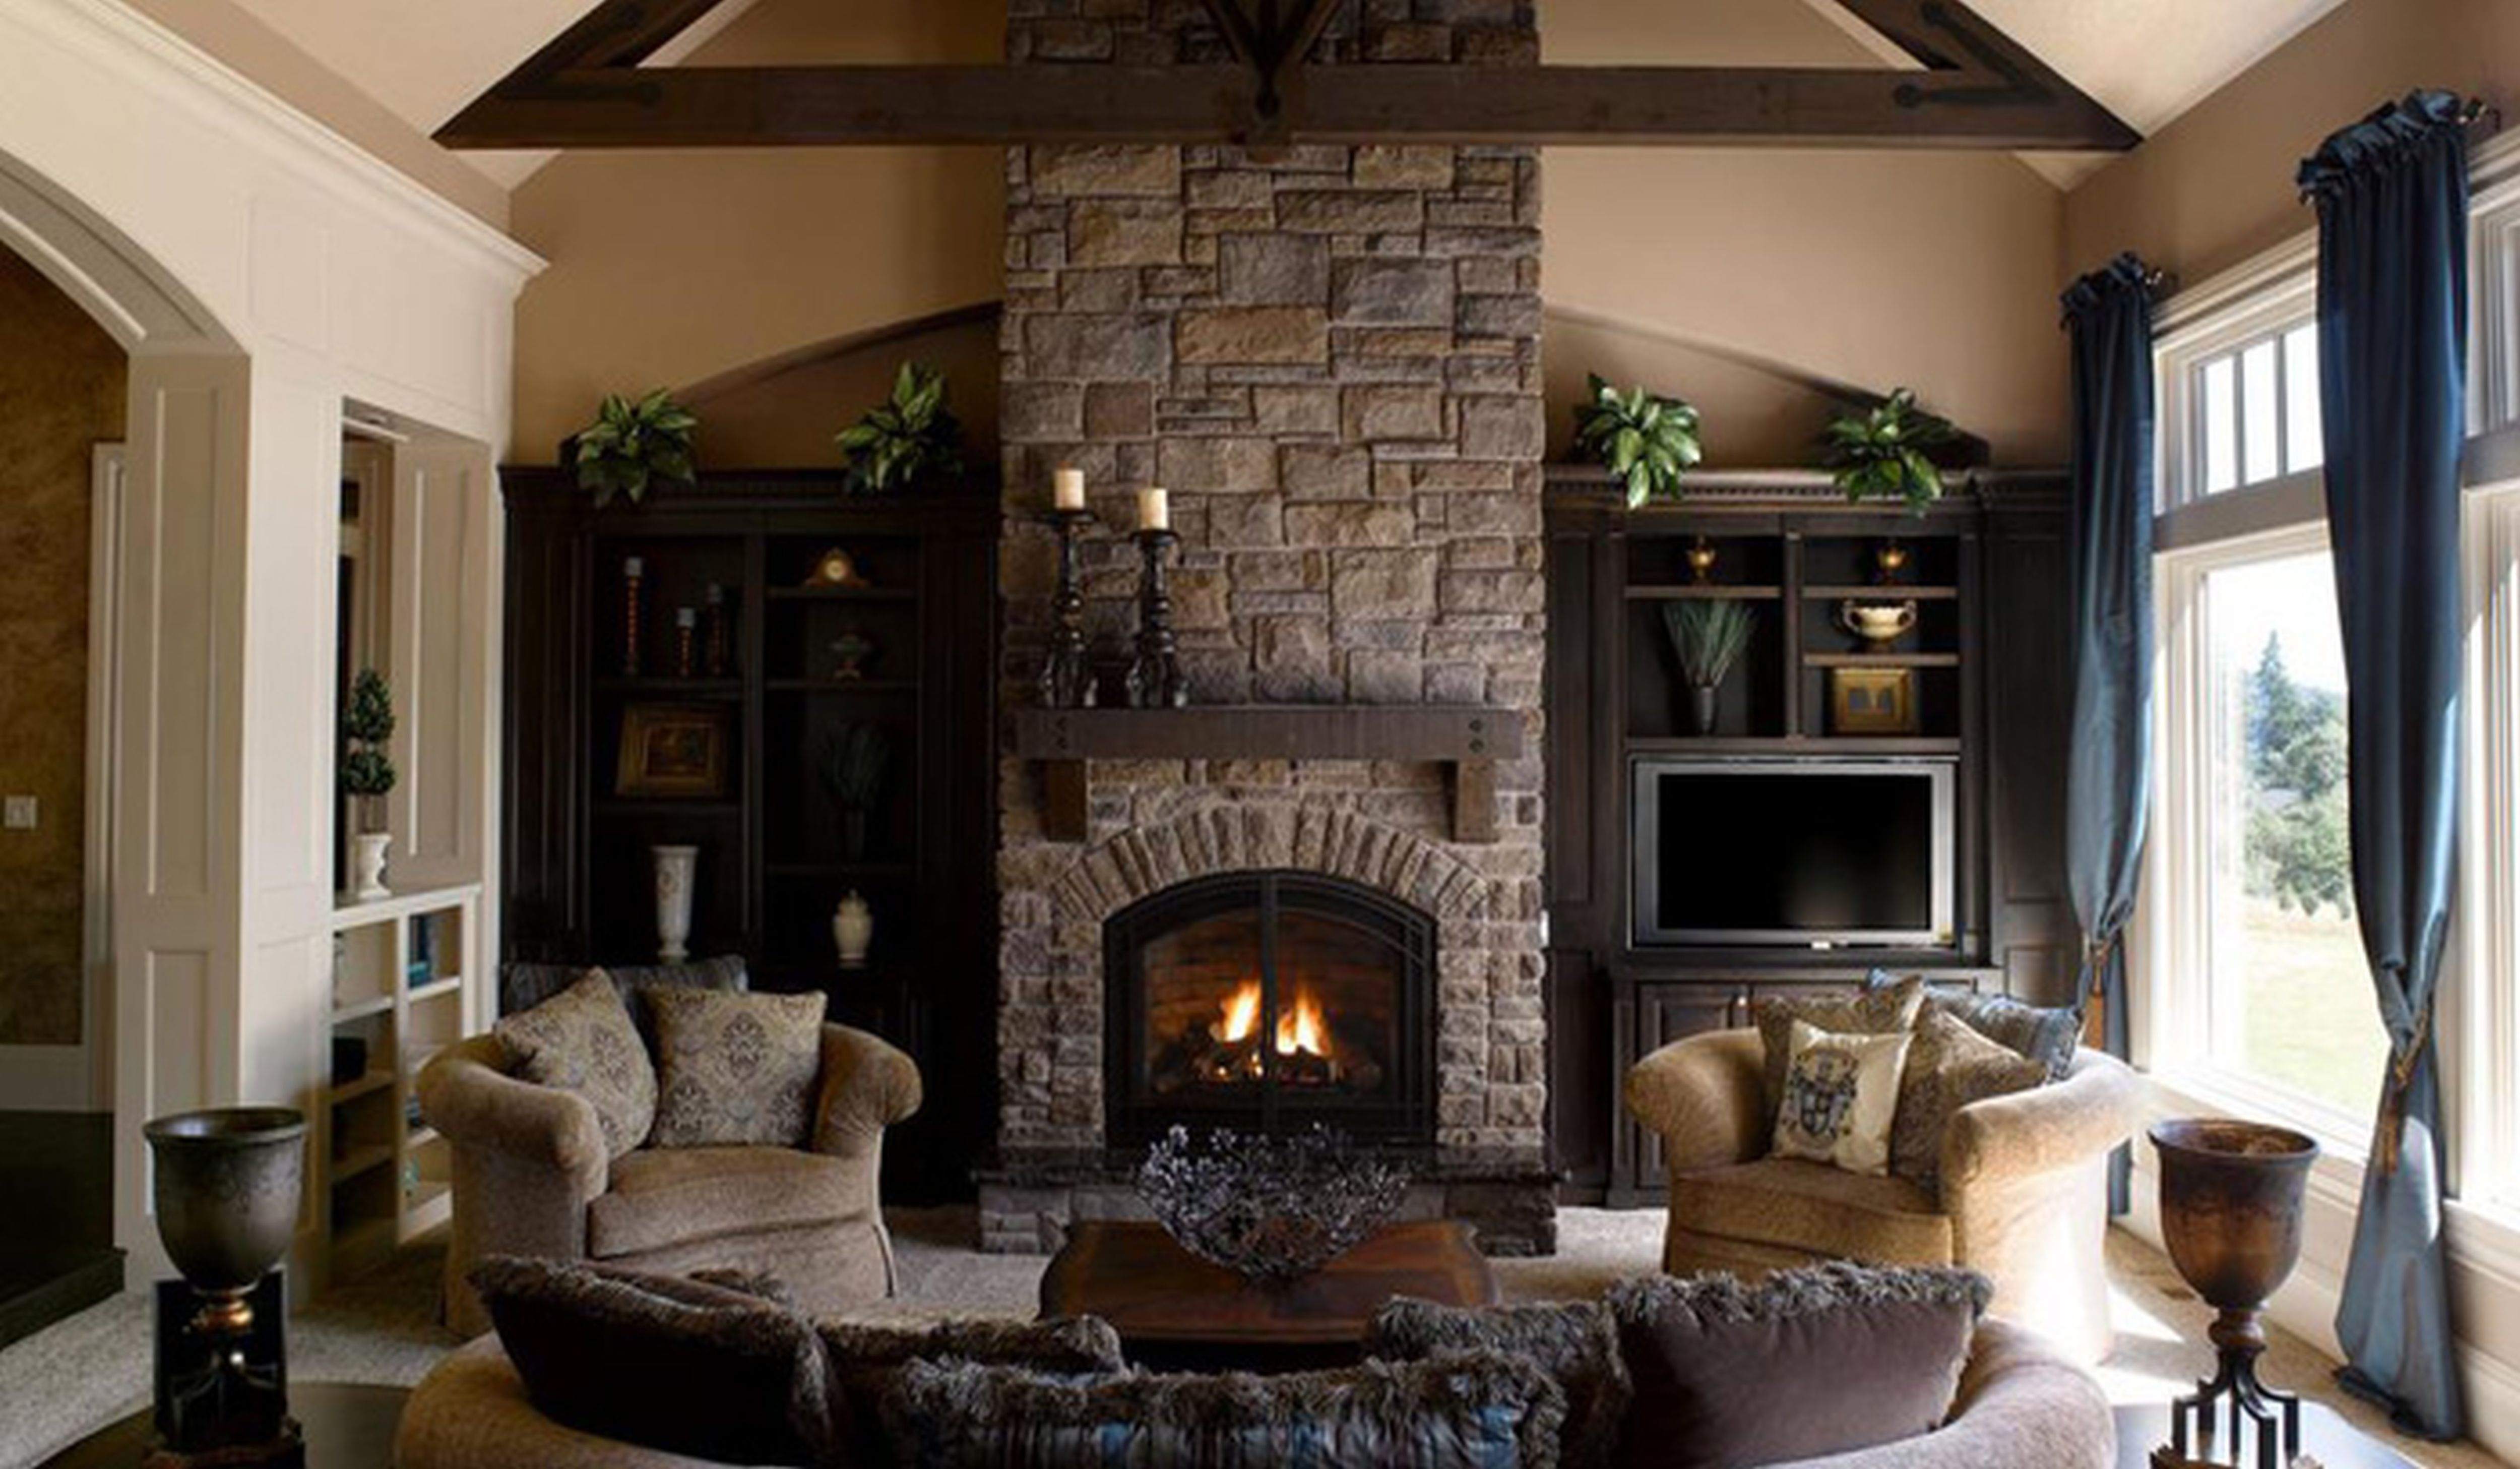 Today 1620364252 Living Room Stone Fireplaces Designs Ideas The Best Ideas For Your Interior